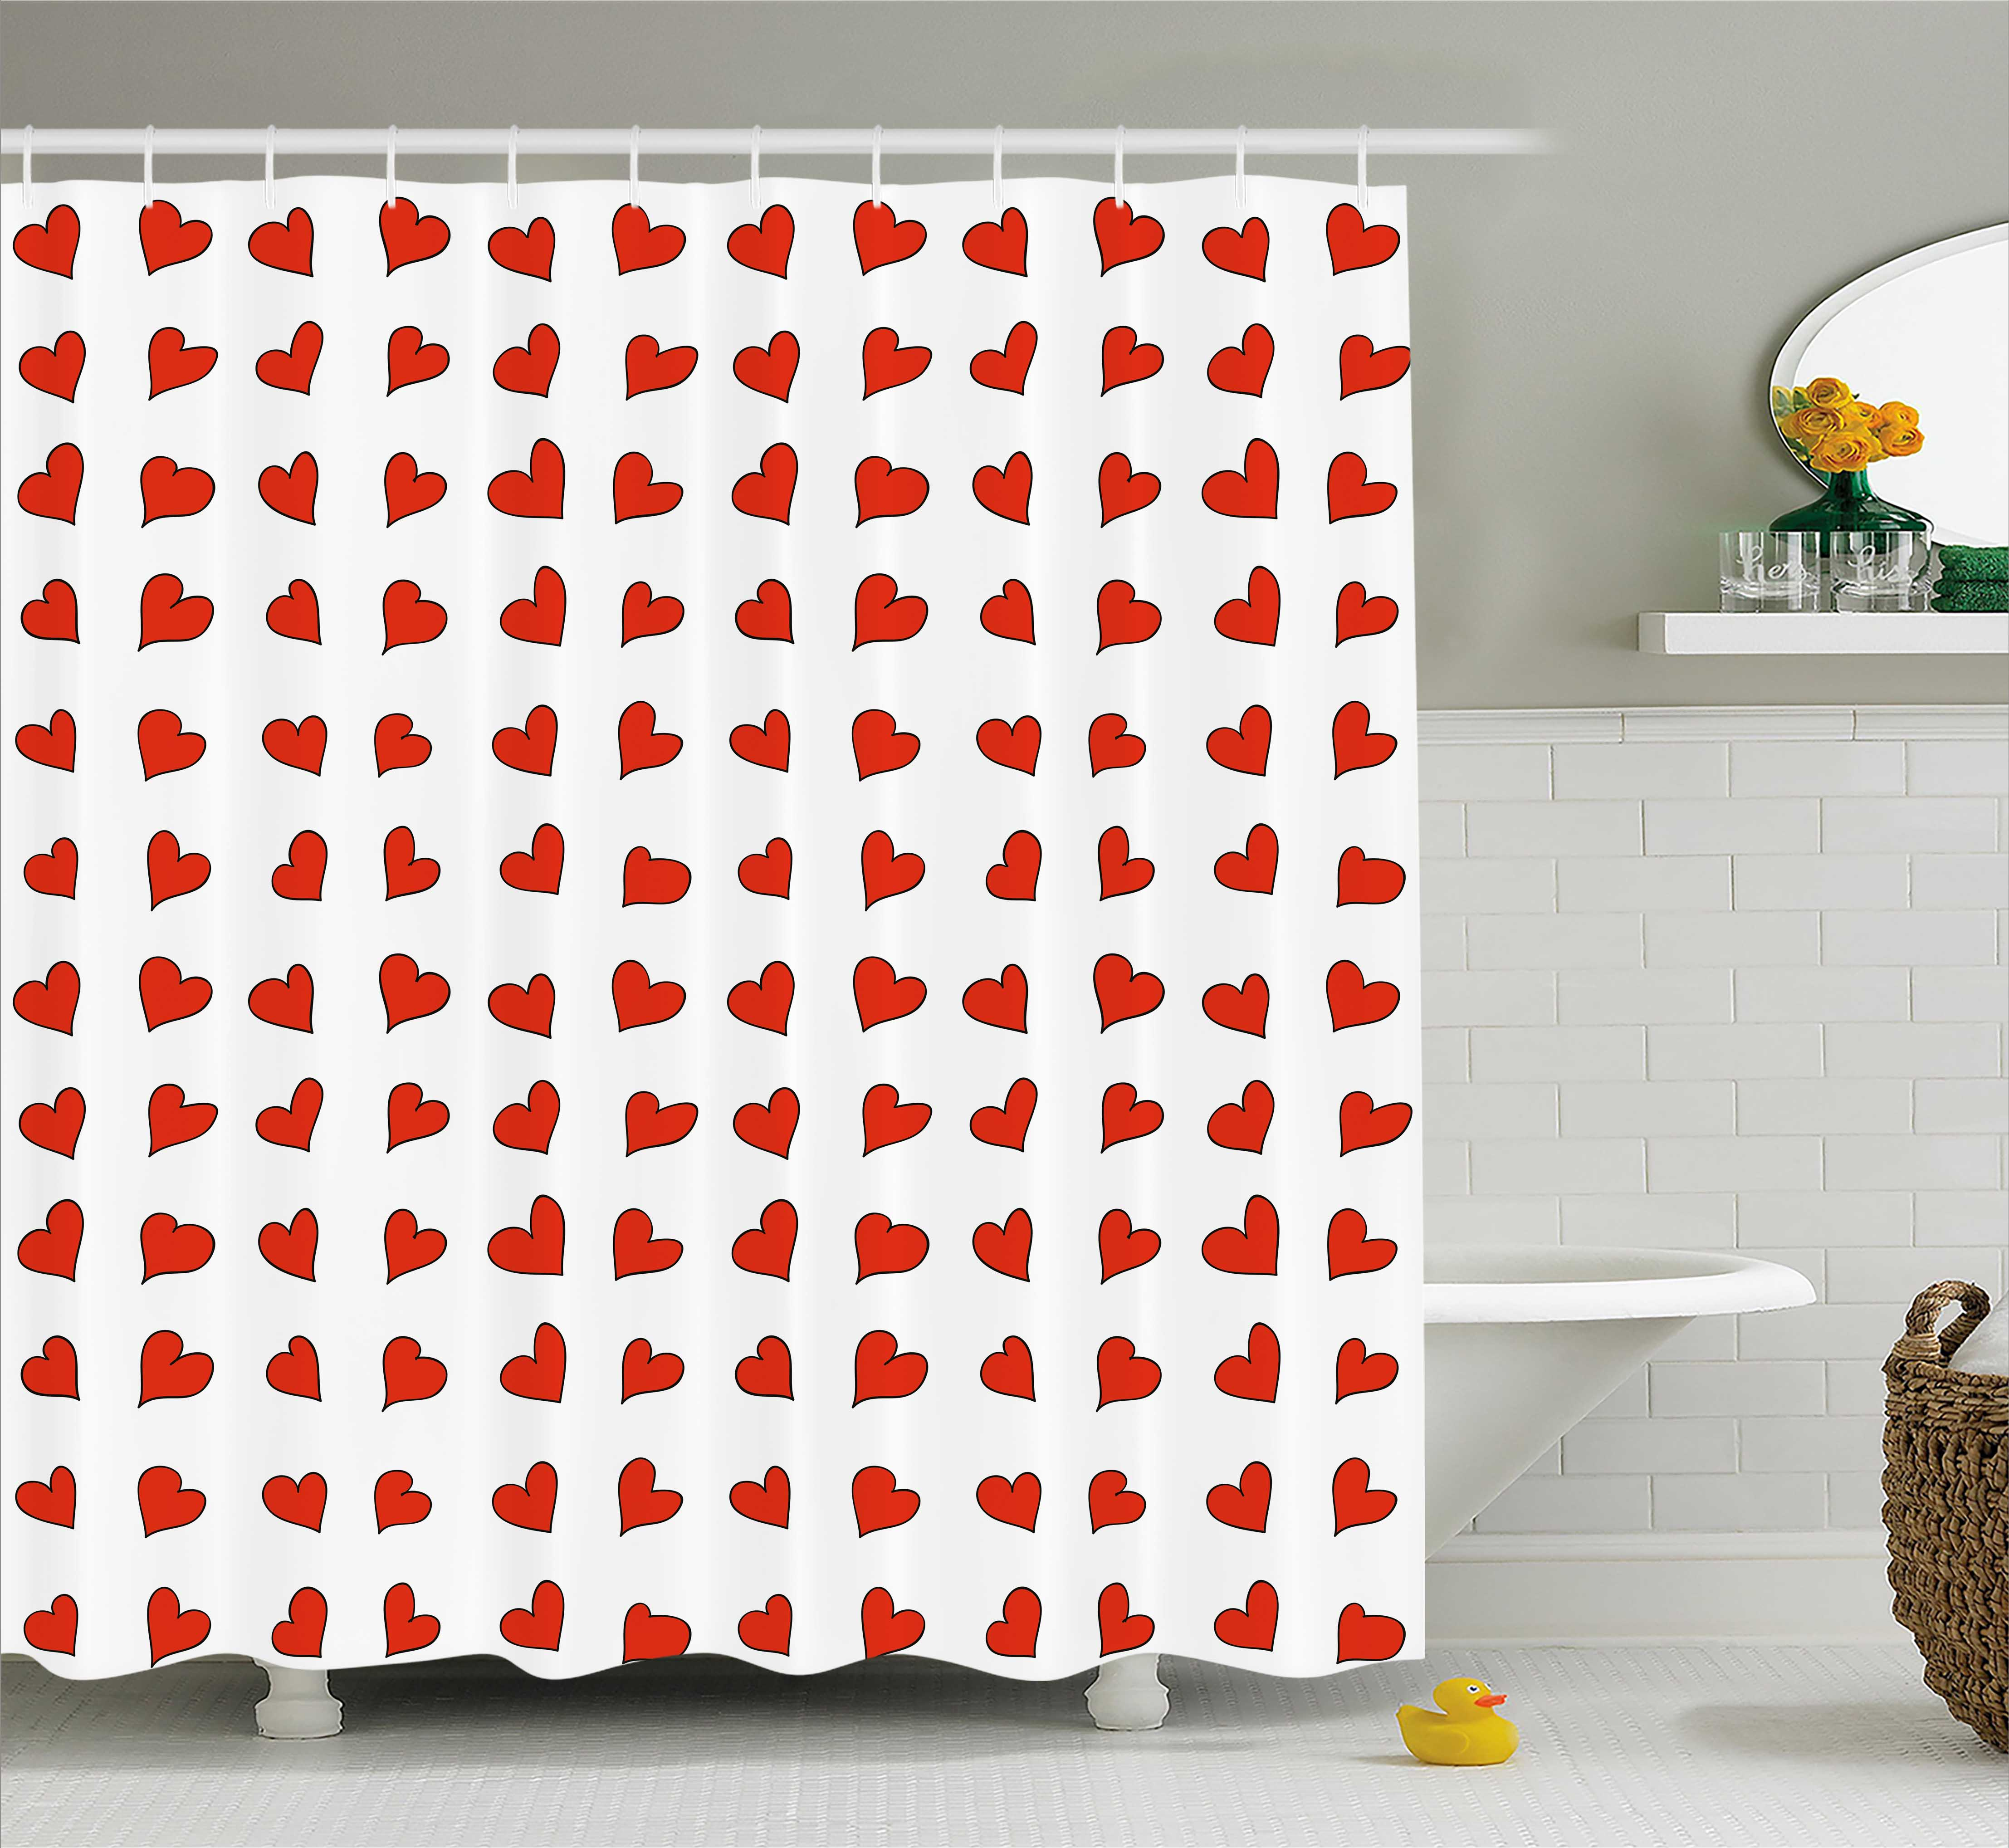 Romantic Shower Curtain, Heart Shapes Pattern Lovers Valentines Day Cute Honeymoon Kids Girls Doodle Design, Fabric Bathroom Set with Hooks, 69W X 84L Inches Extra Long, Red White, by Ambesonne